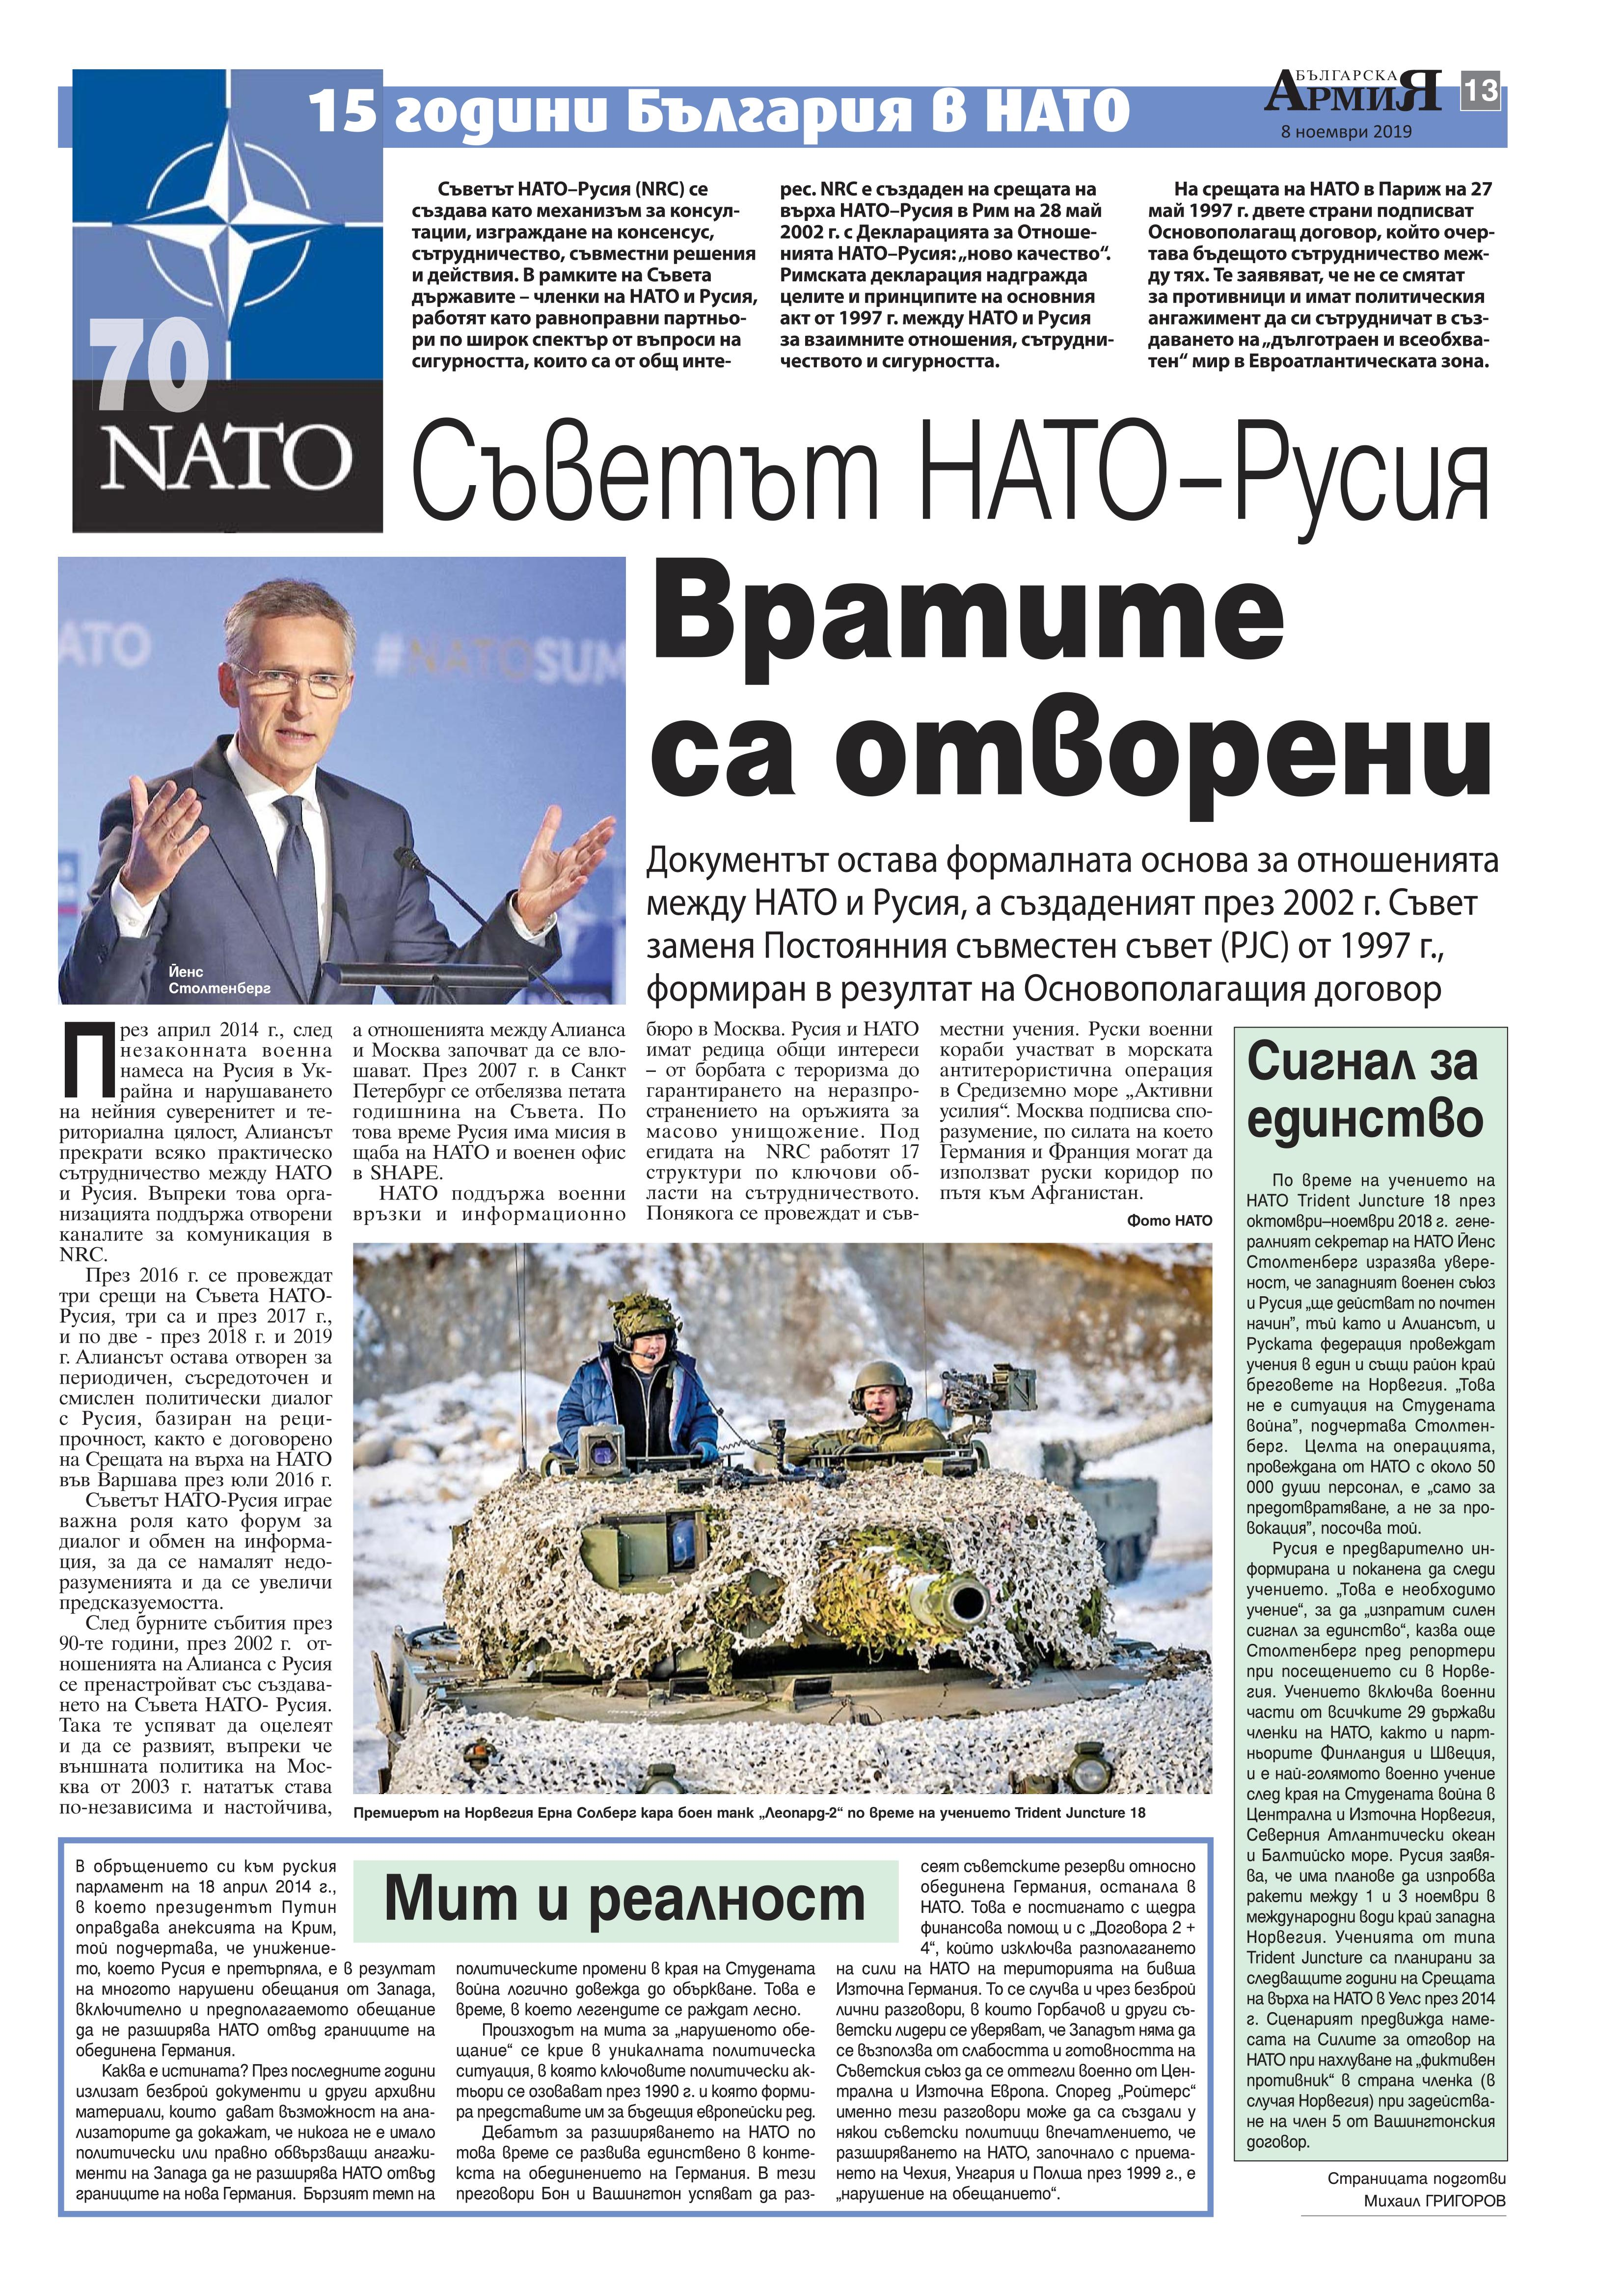 https://armymedia.bg/wp-content/uploads/2015/06/13.page1_-115.jpg